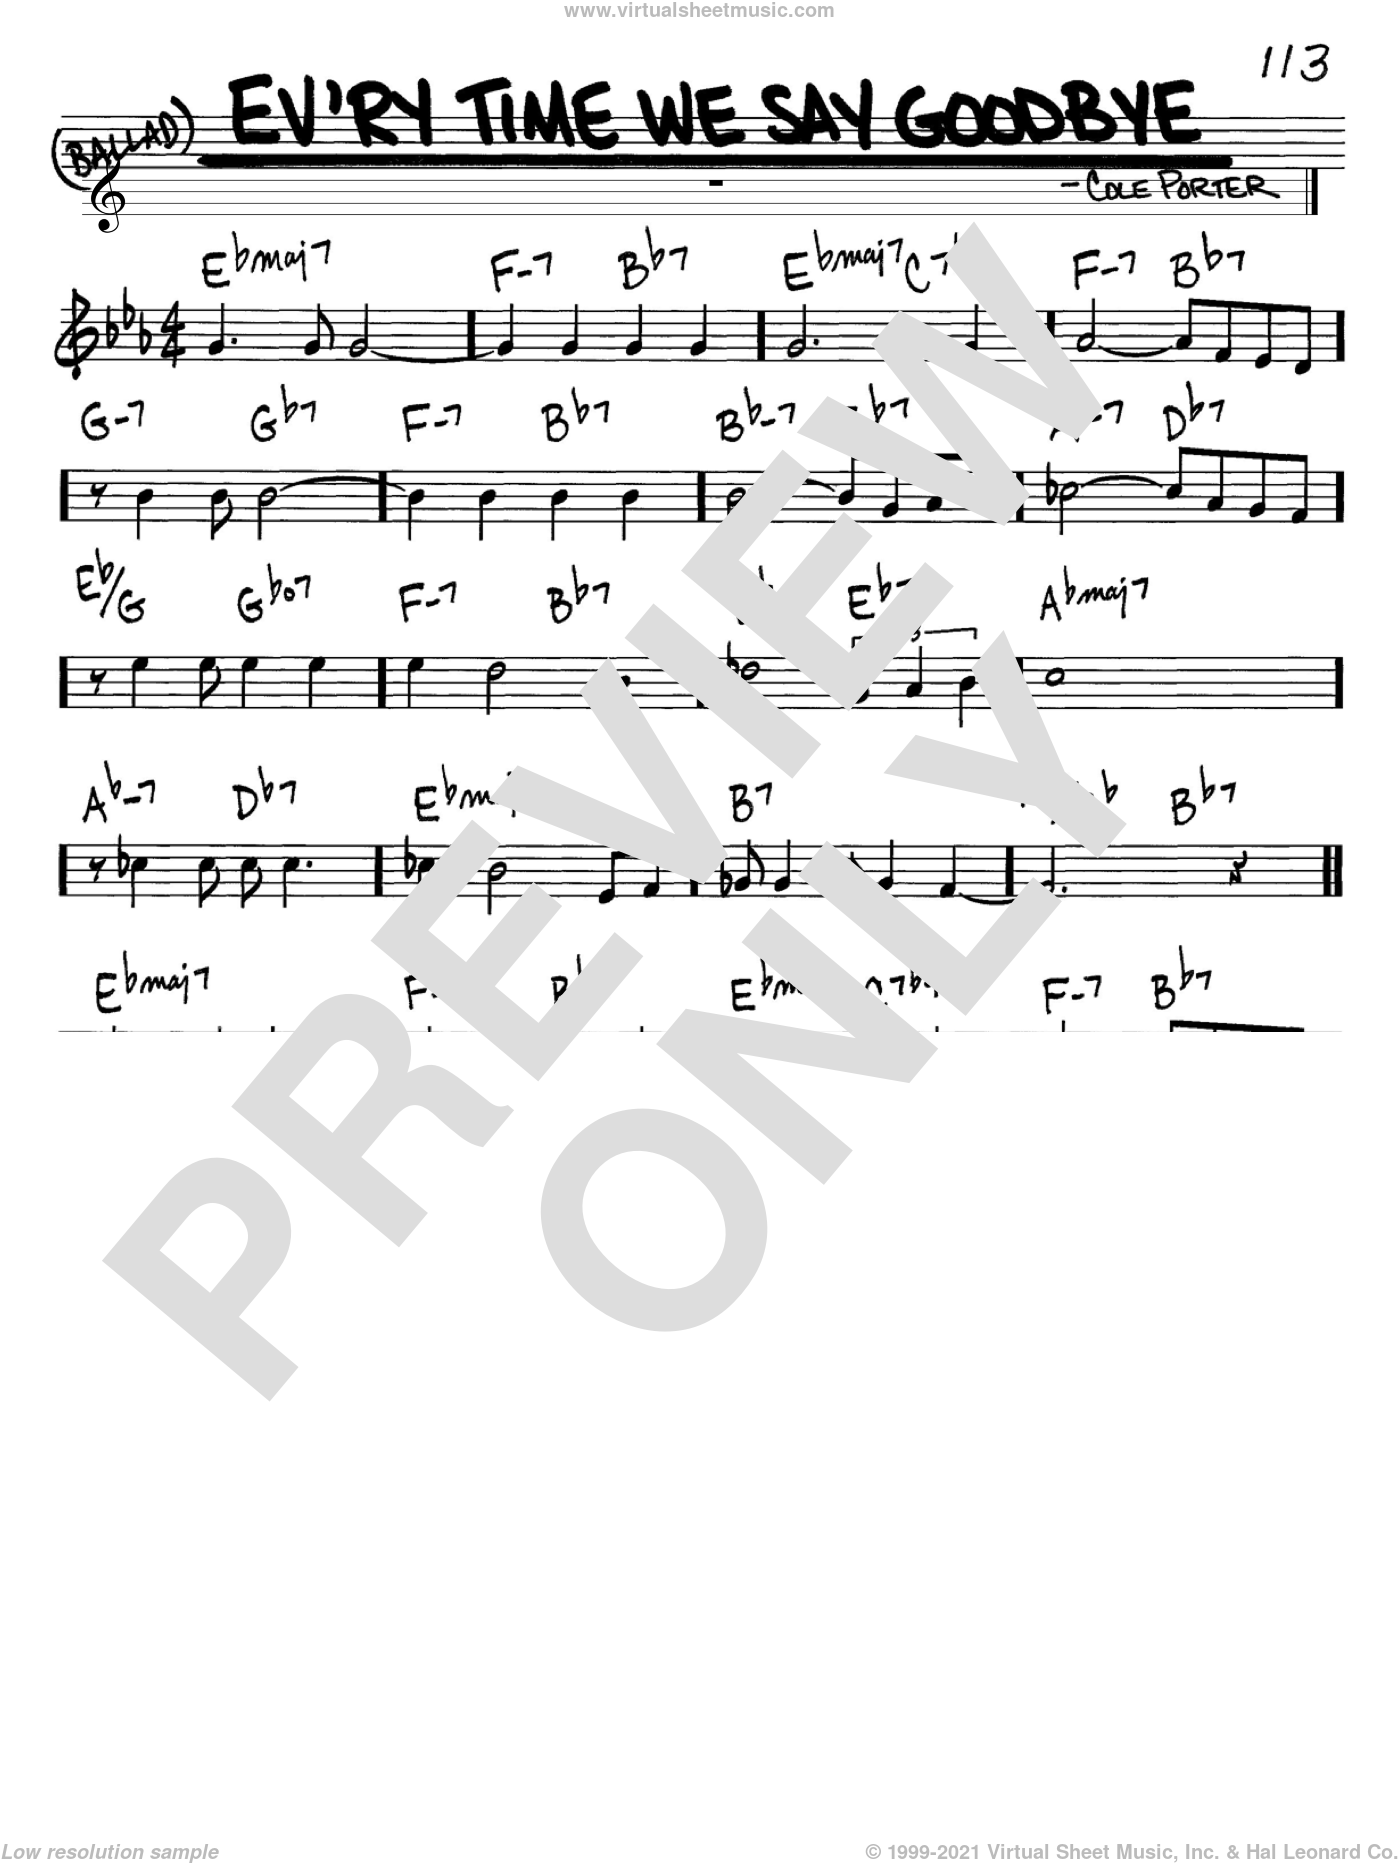 Ev'ry Time We Say Goodbye sheet music for voice and other instruments (C) by Cole Porter